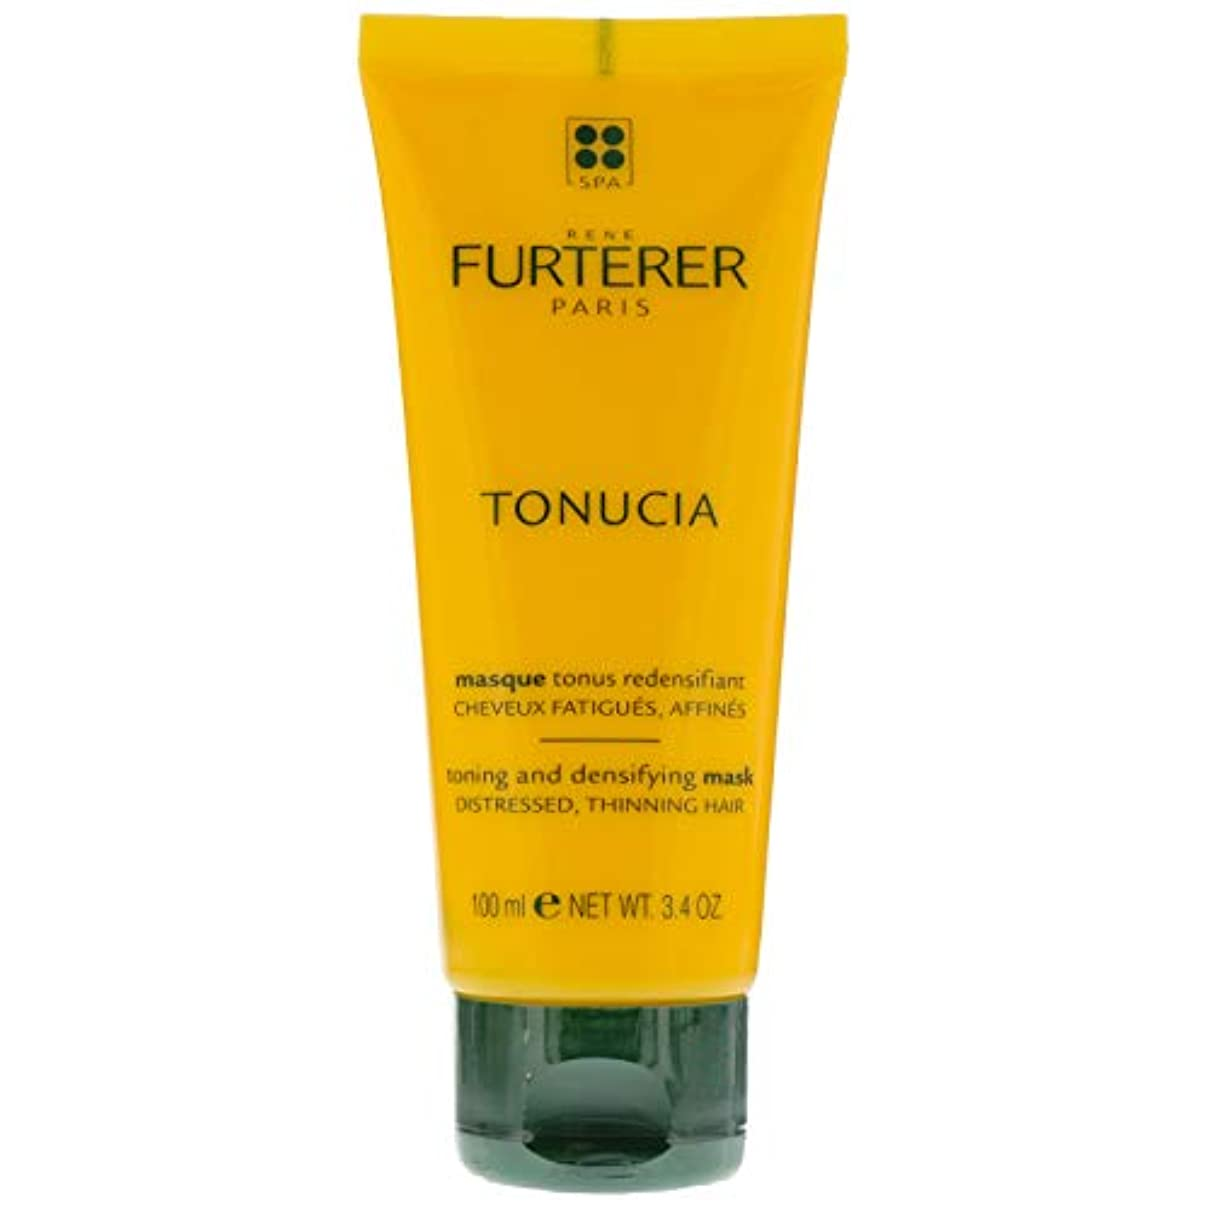 昼食真実ヒューズルネ フルトレール Tonucia Thickening Ritual Toning and Densifying Mask (Distressed, Thinning Hair) 100ml/3.4oz並行輸入品